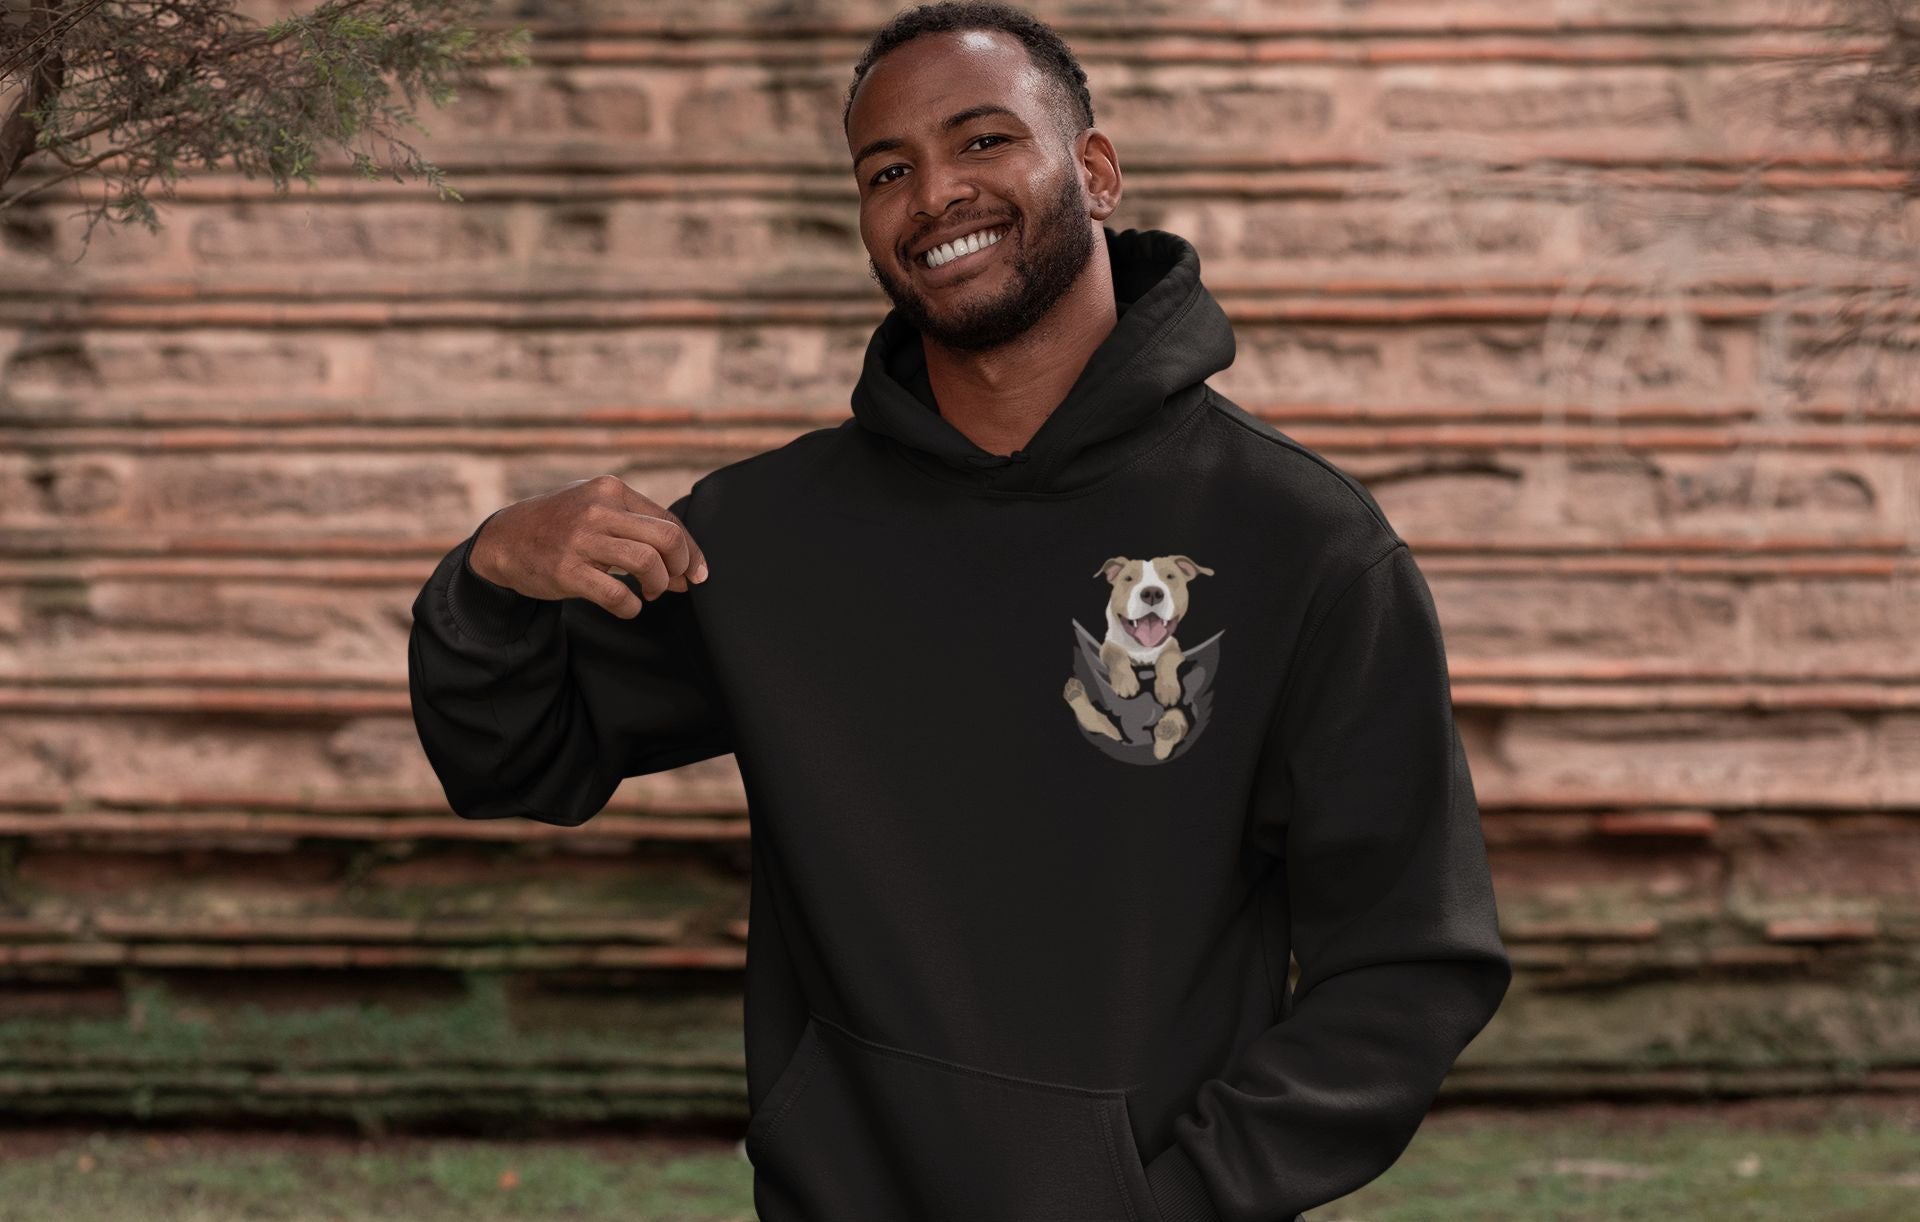 Pocket Buddies Men's Hooded Sweatshirt - Completely Customizable